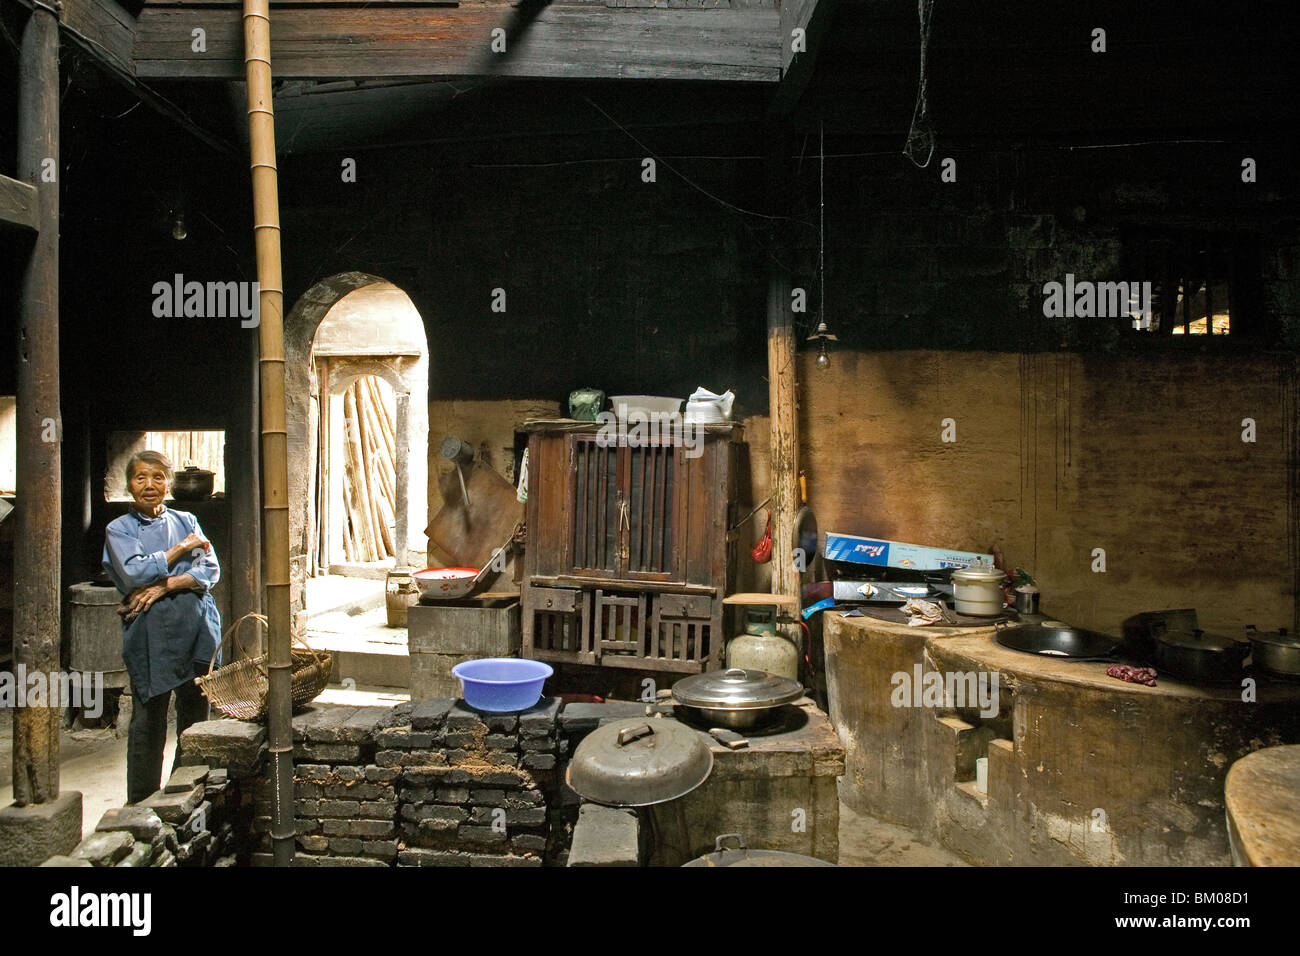 traditional kitchen, timber house in Chengkun, ancient village, living museum, China, Asia, World Heritage Site, - Stock Image